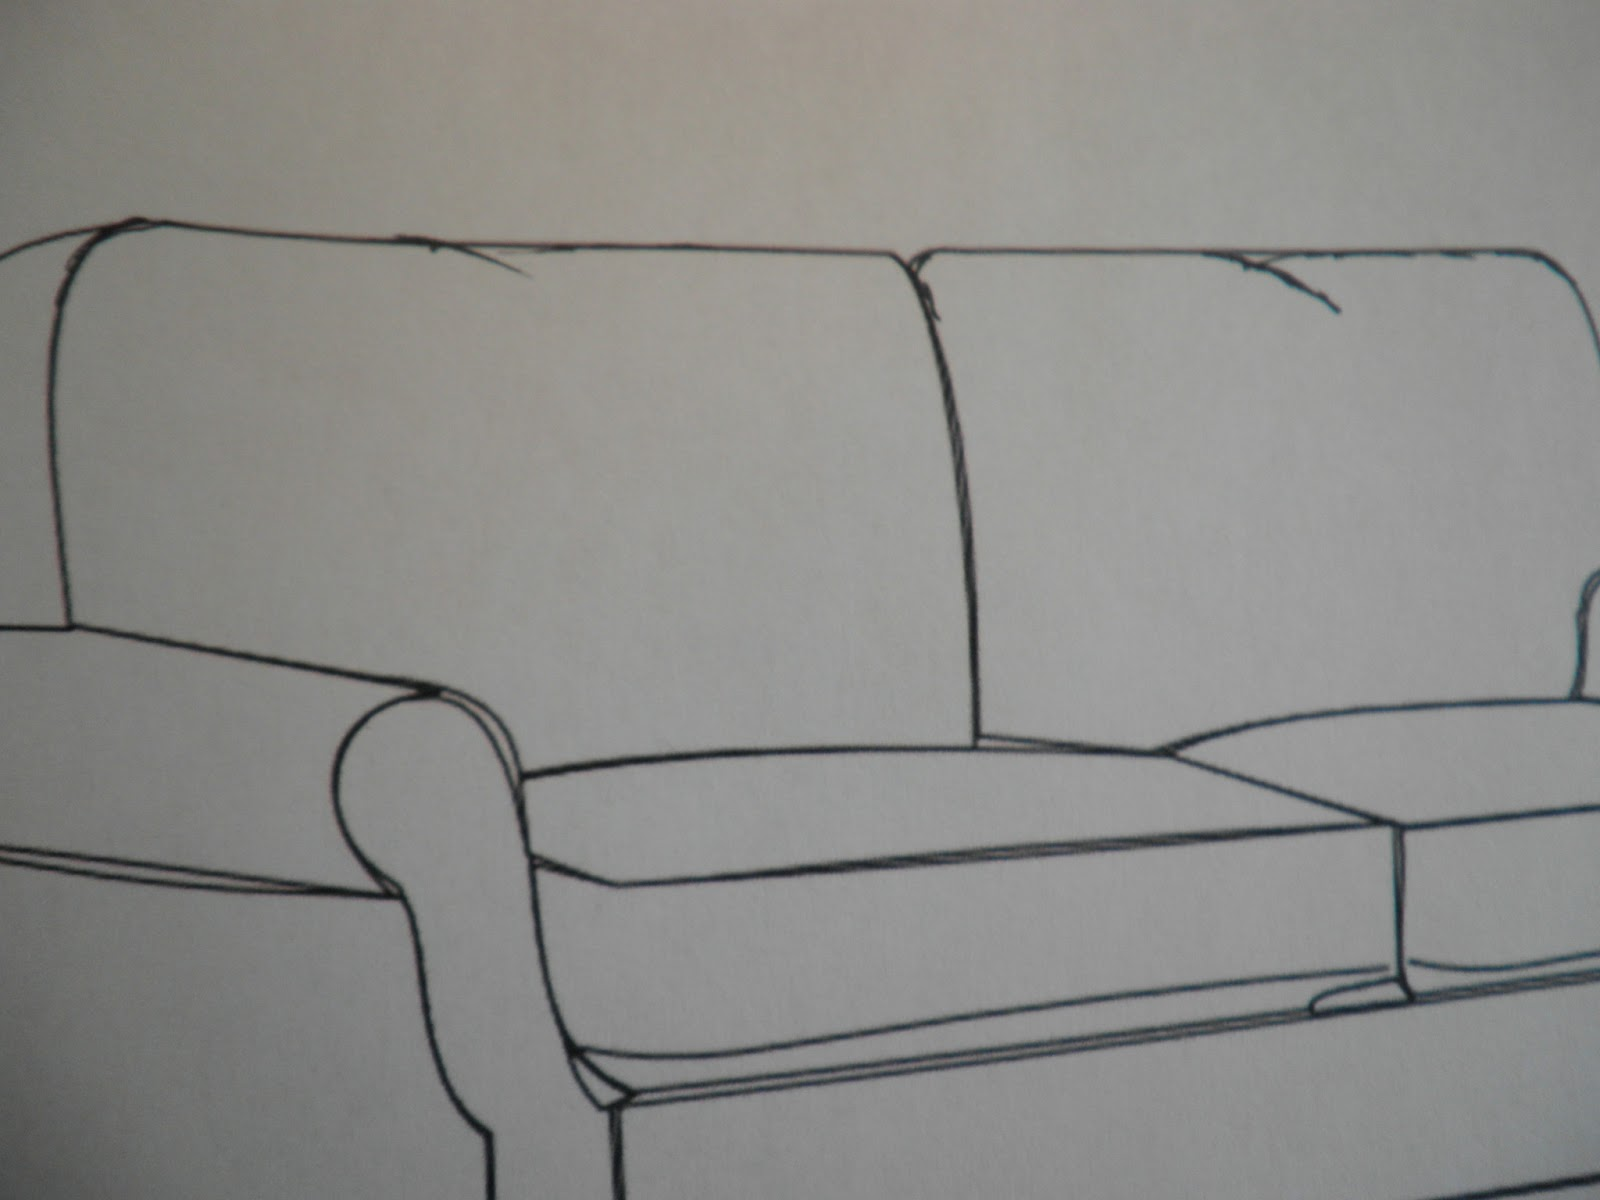 Step Two Using The Prismacolor Marker French Grey 10 Fill In Each Section Of Sofa With A Uniform Wash Color